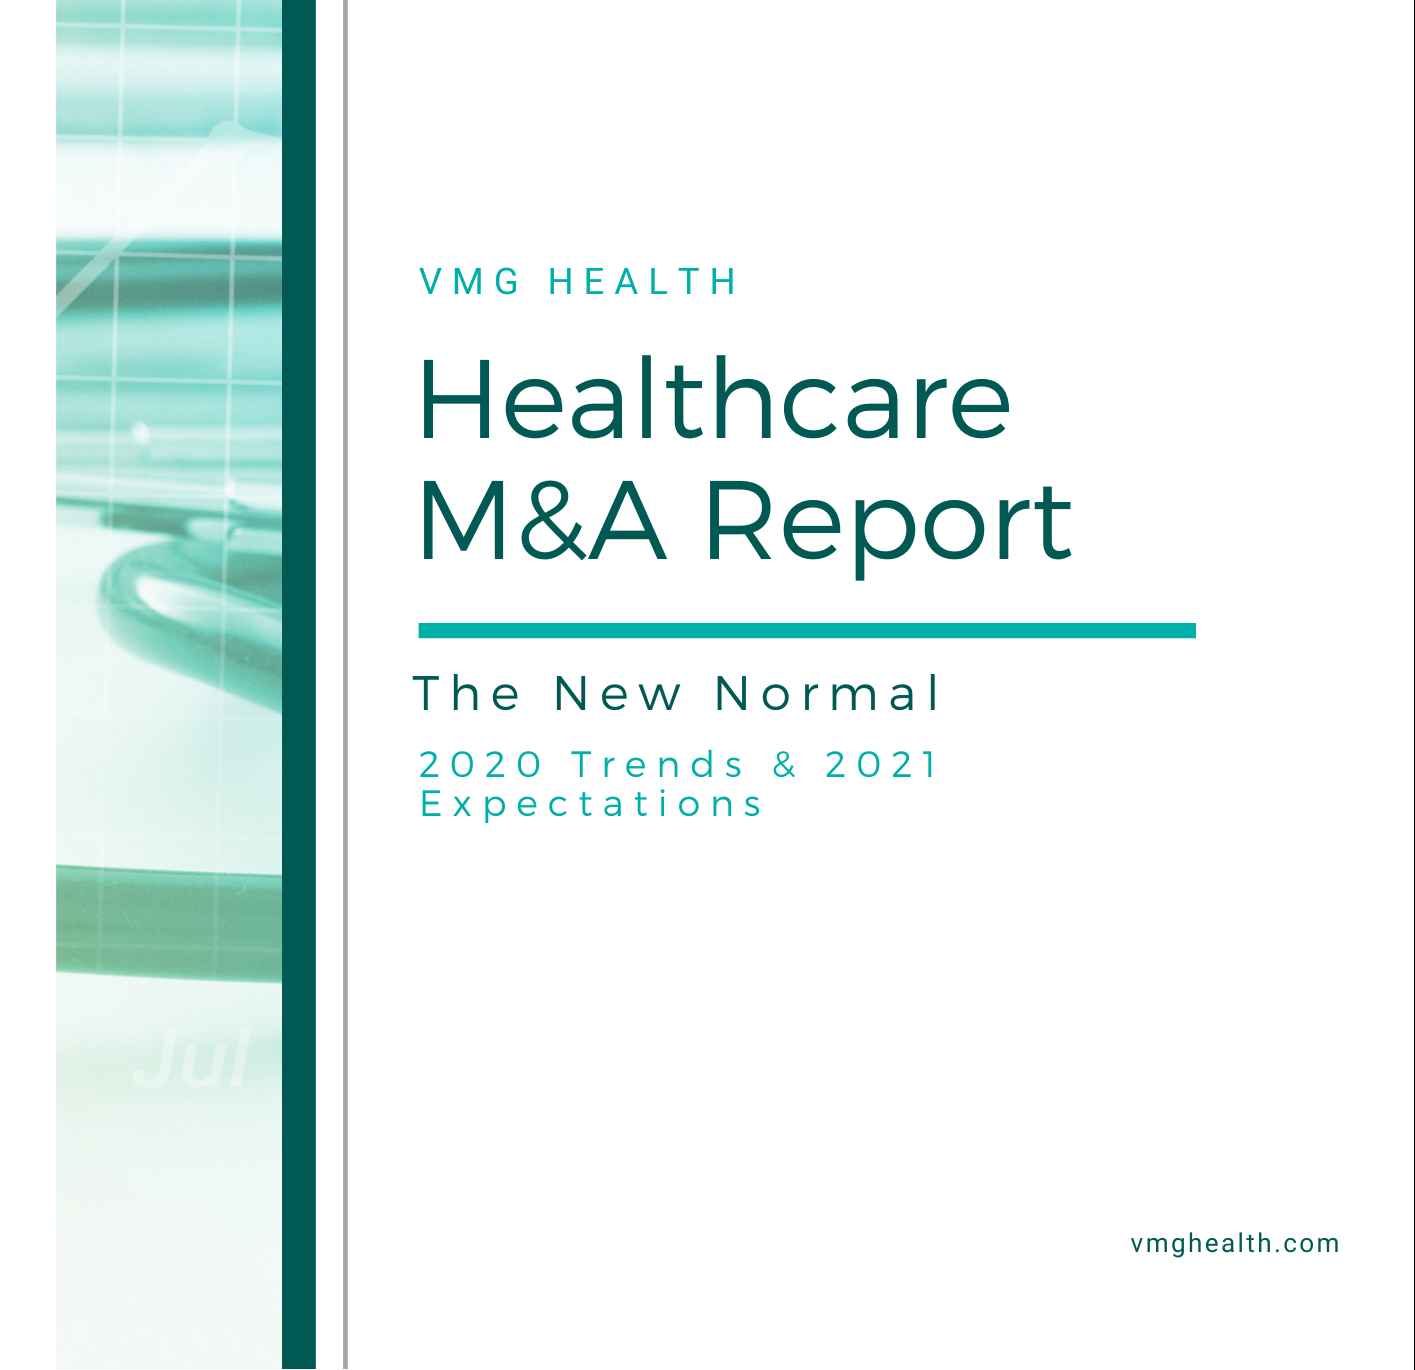 Healthcare M&A Report: The New Normal – 2020 Trends & 2021 Expectations